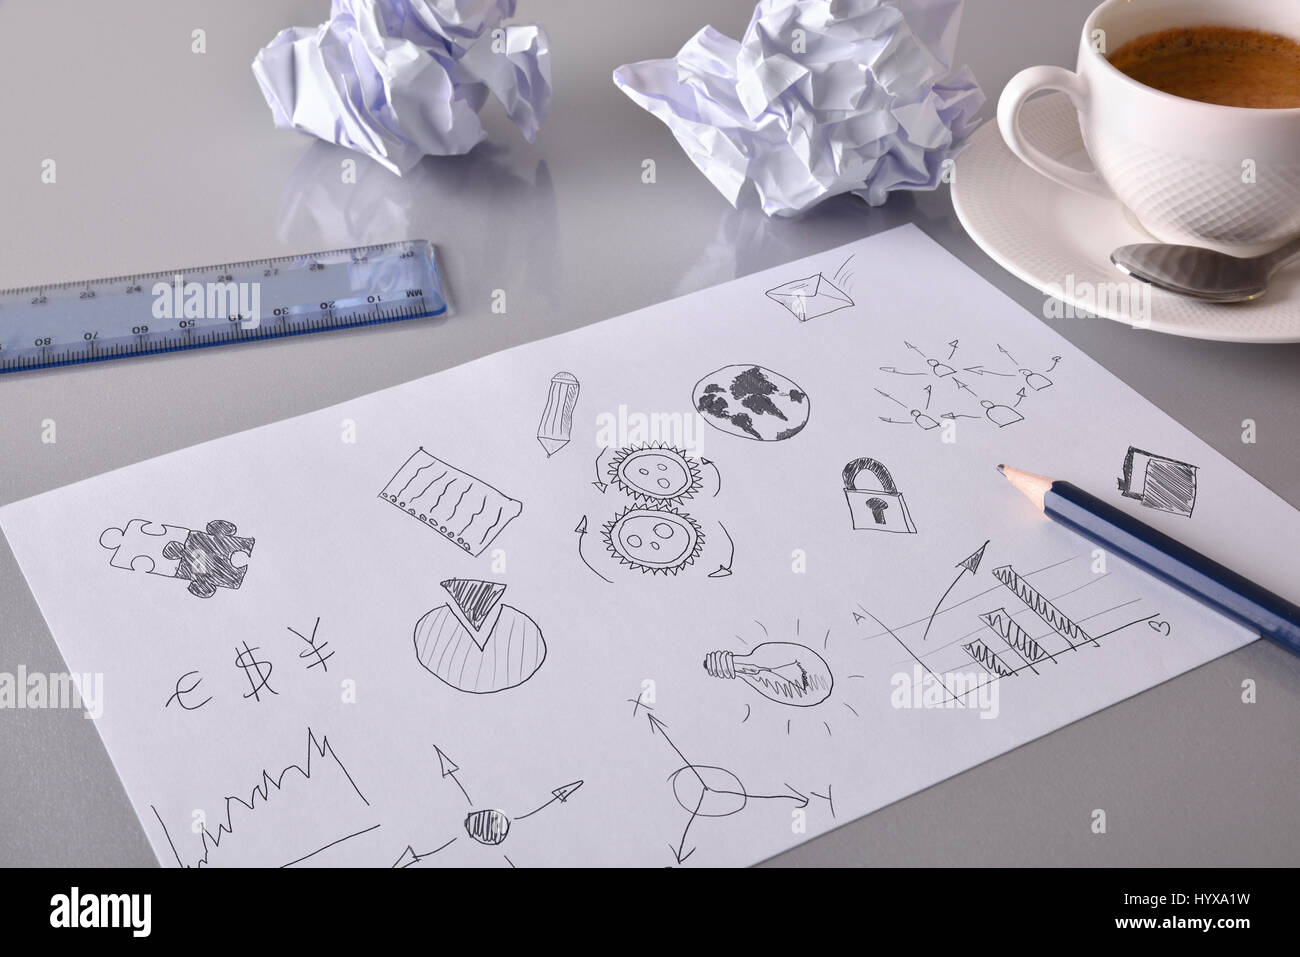 Sheet with drawings of relevant business concept on gray office table with crumpled sheets and coffee in the background. - Stock Image